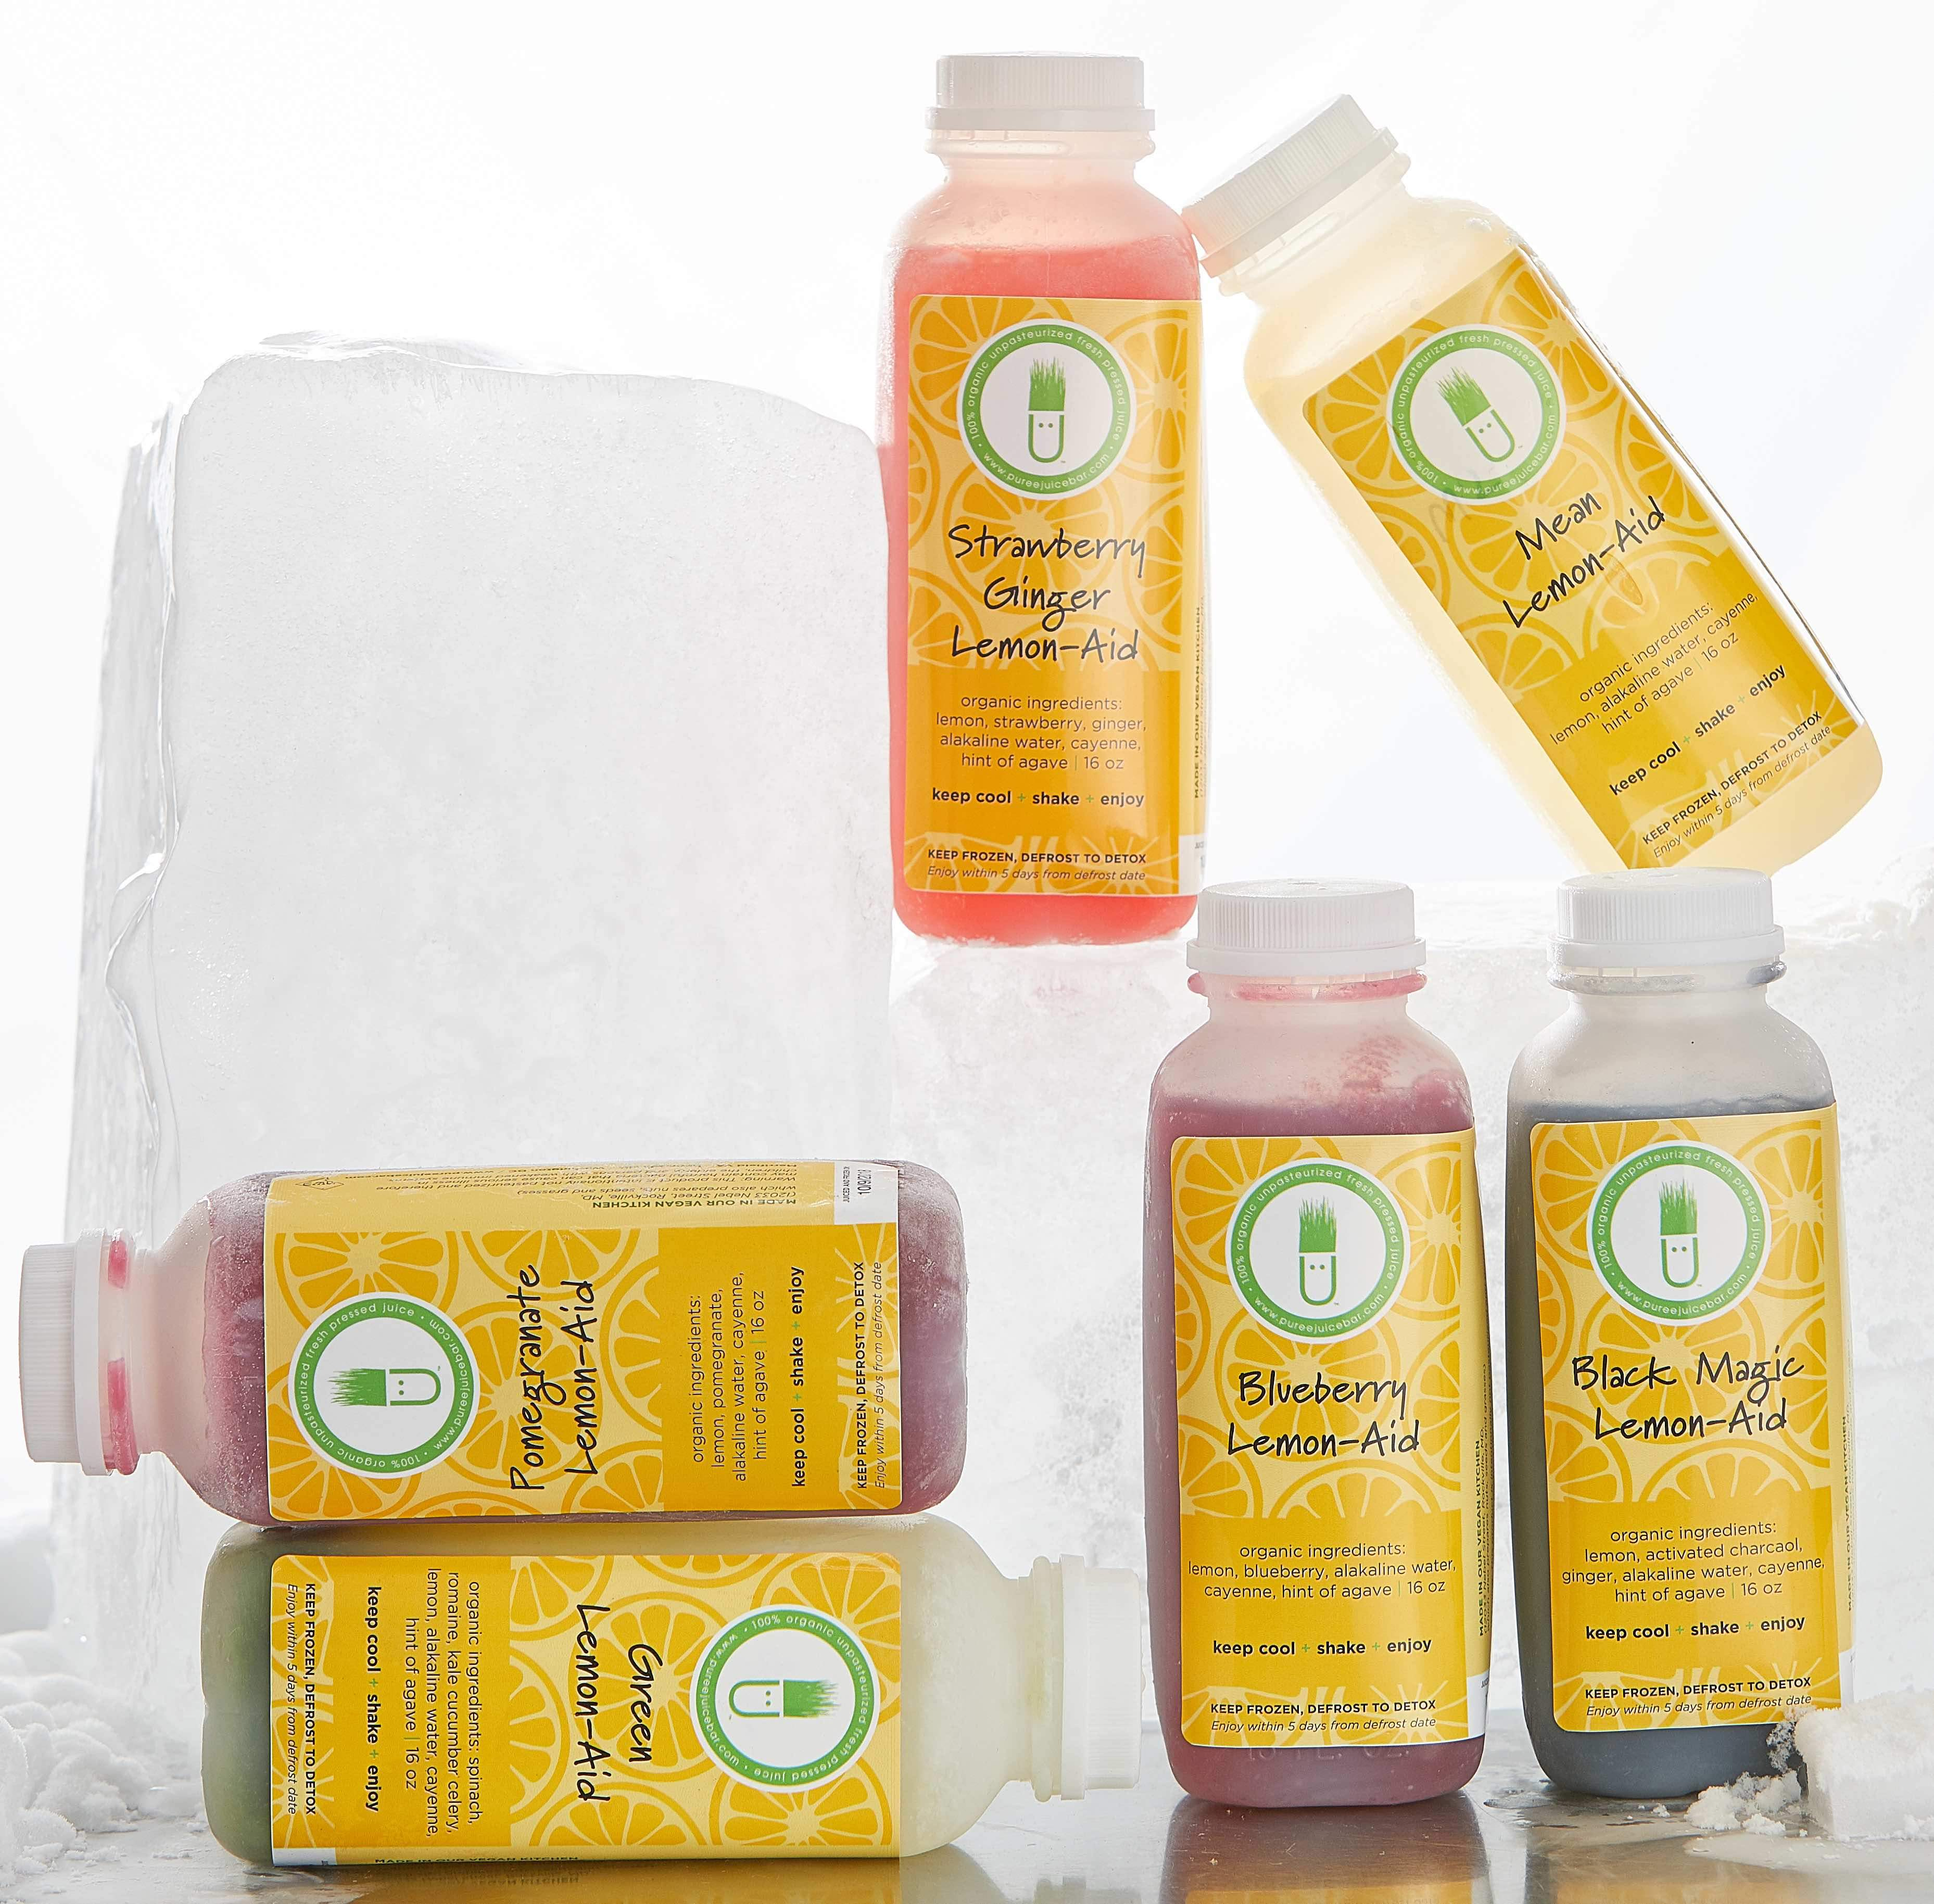 Lemon-Aid Variety Pack